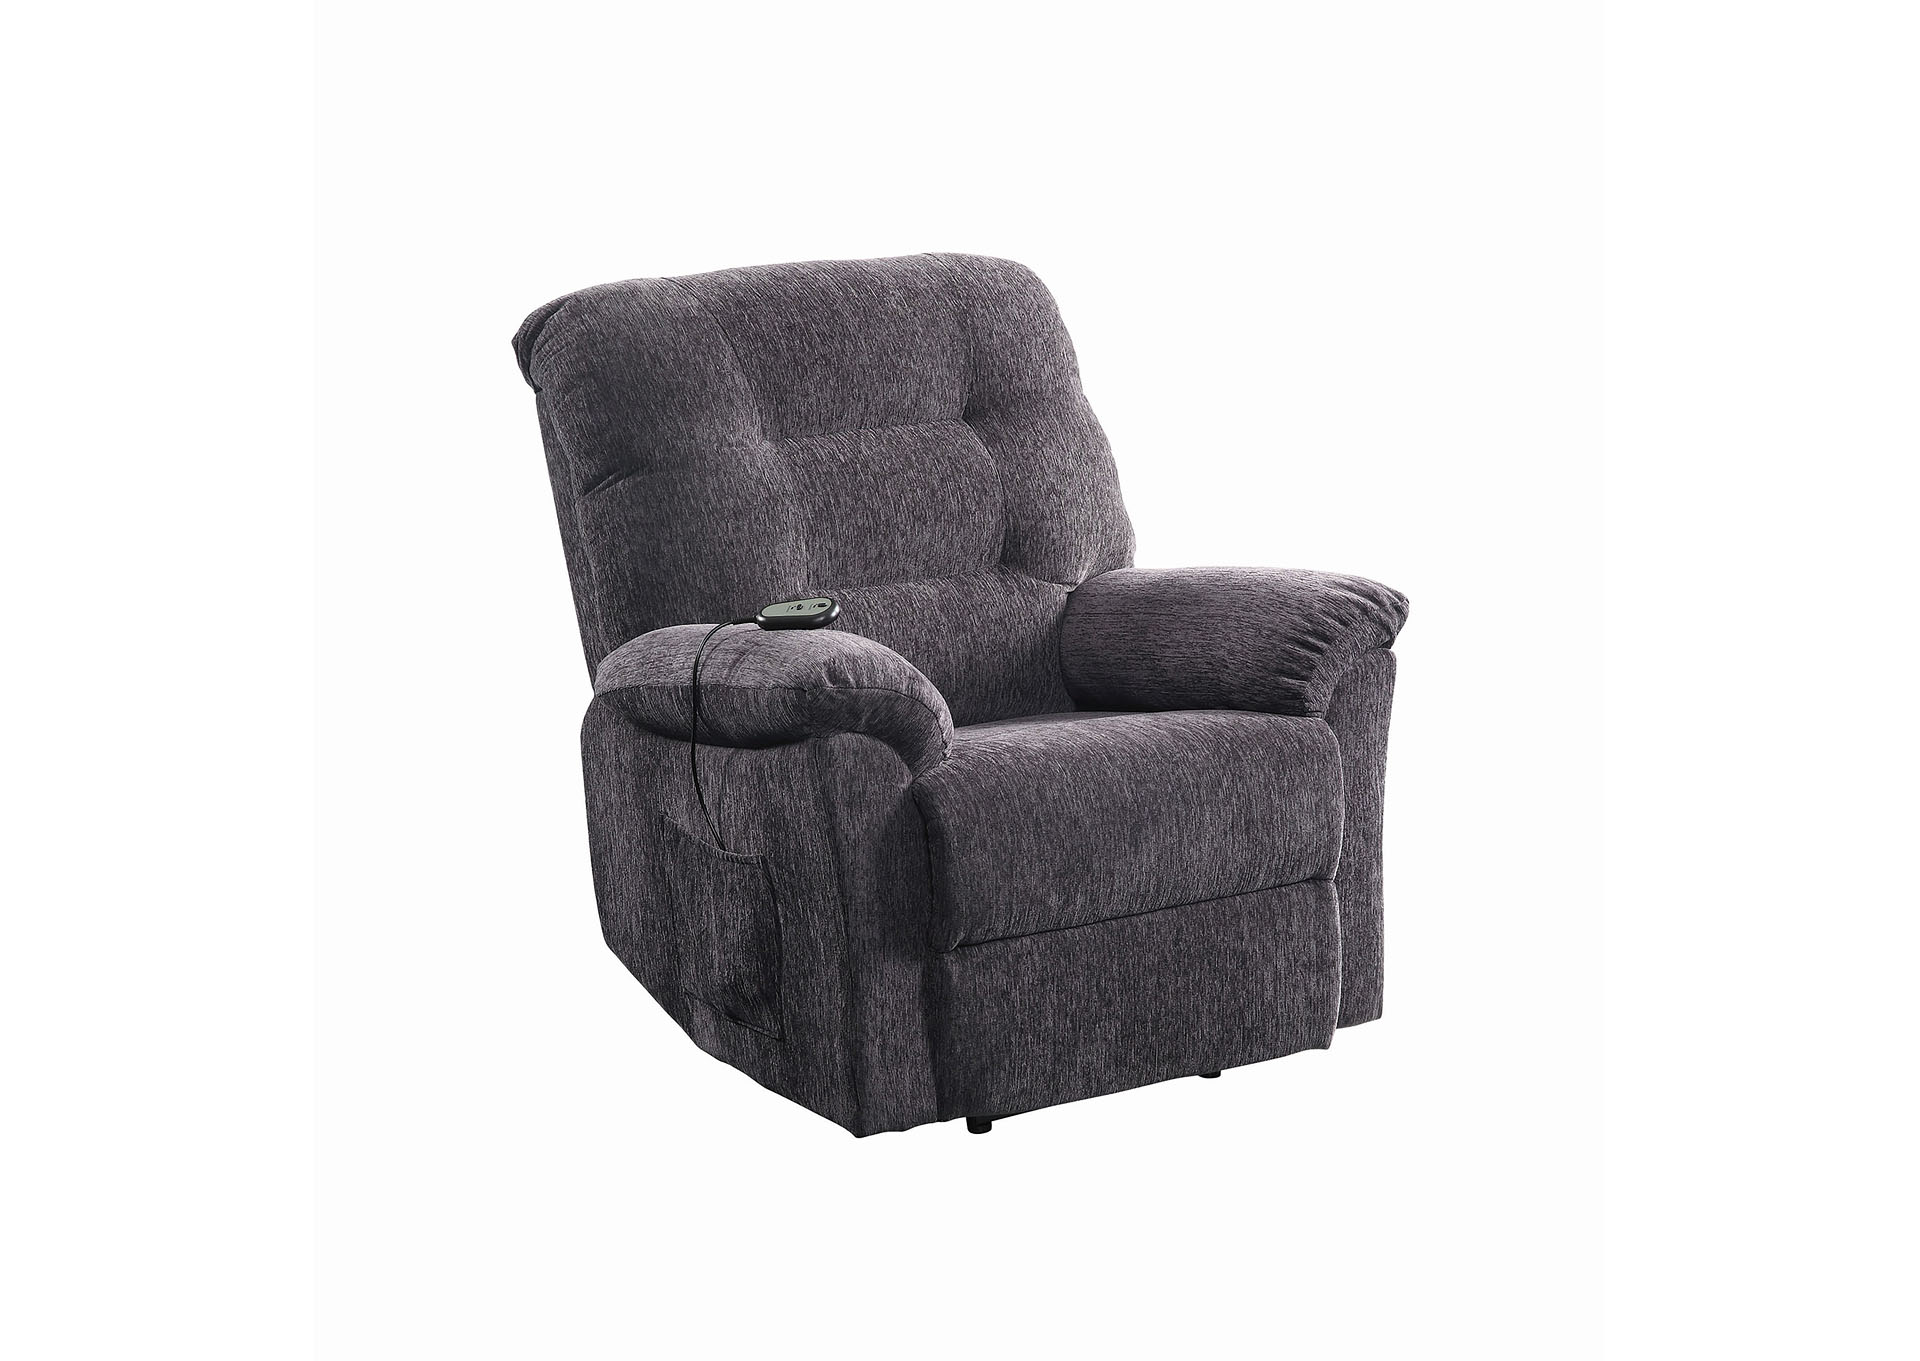 Emperor Casual Dark Grey Power Lift Recliner,Coaster Furniture